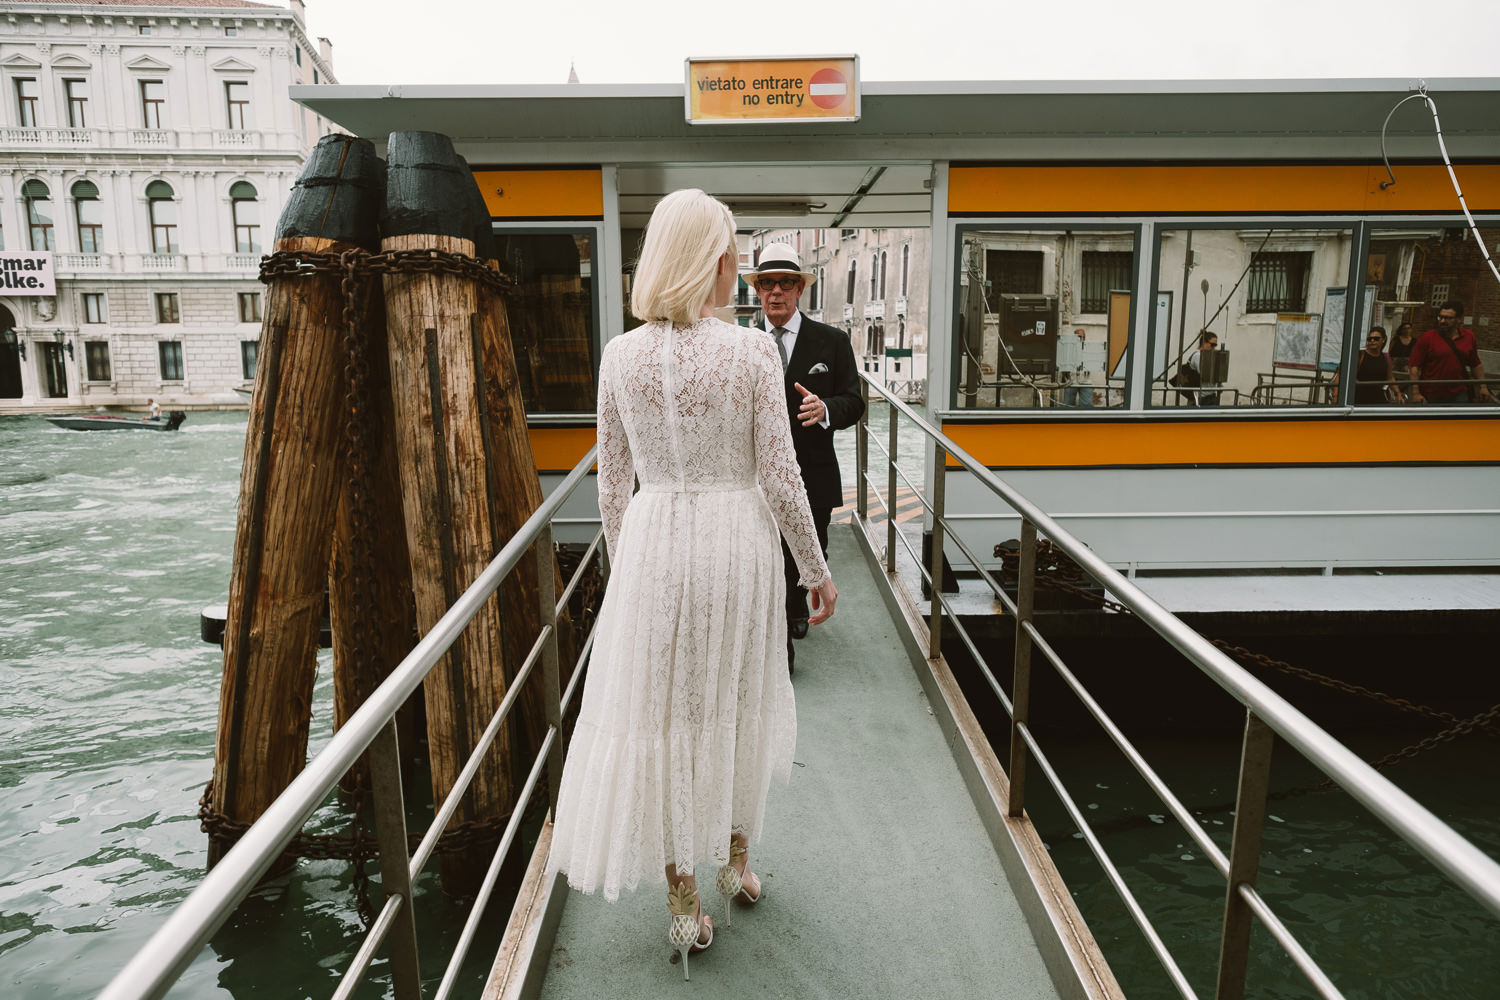 groom on way her way to a wedding in venice by destination weddi